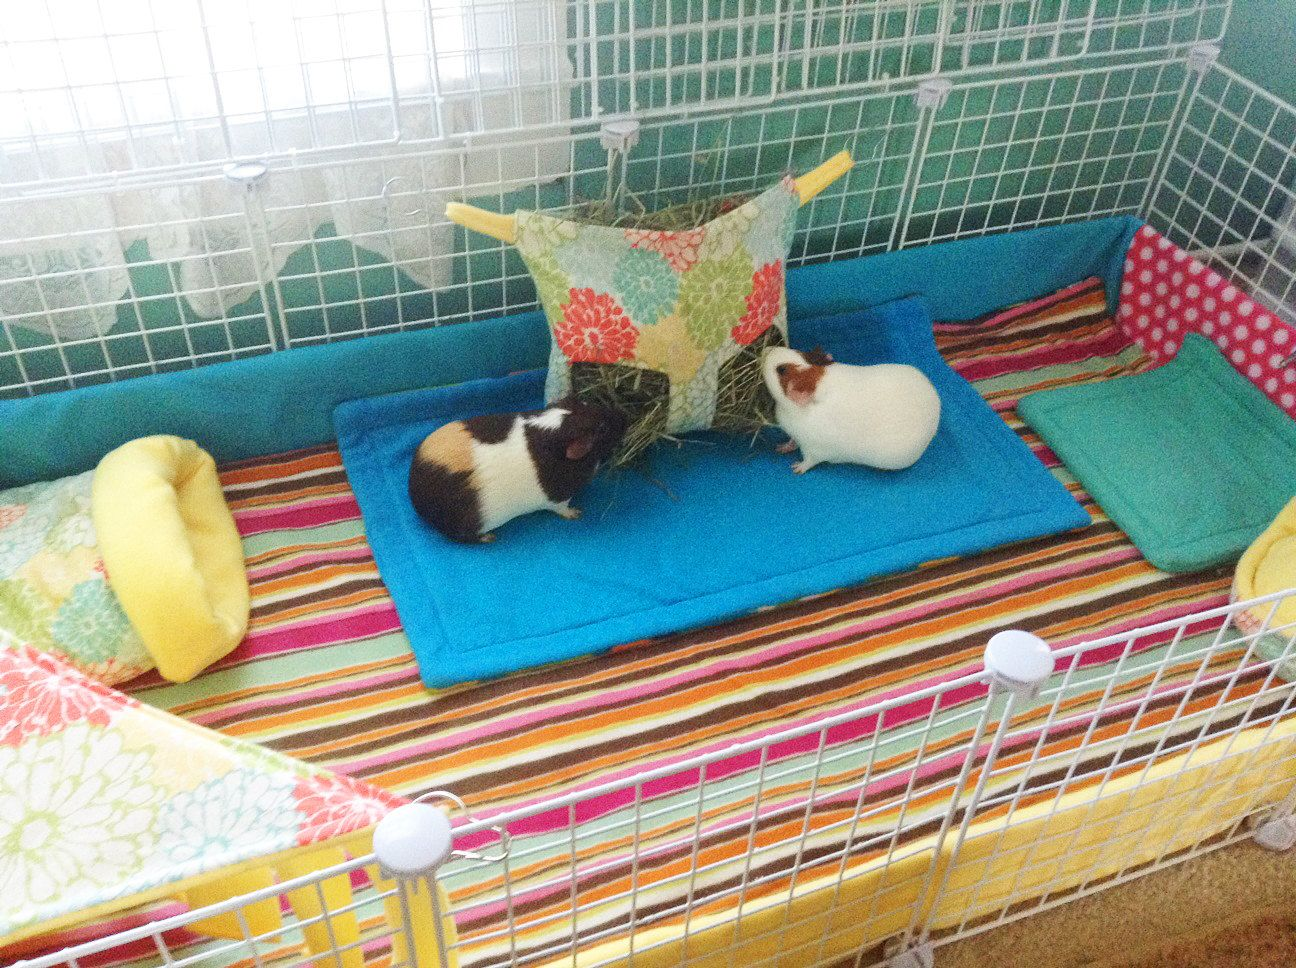 wheel water cage habitat supplier from garden item with cages house playground guinea pig in bottle animal hamster home on feeder small story silent pet